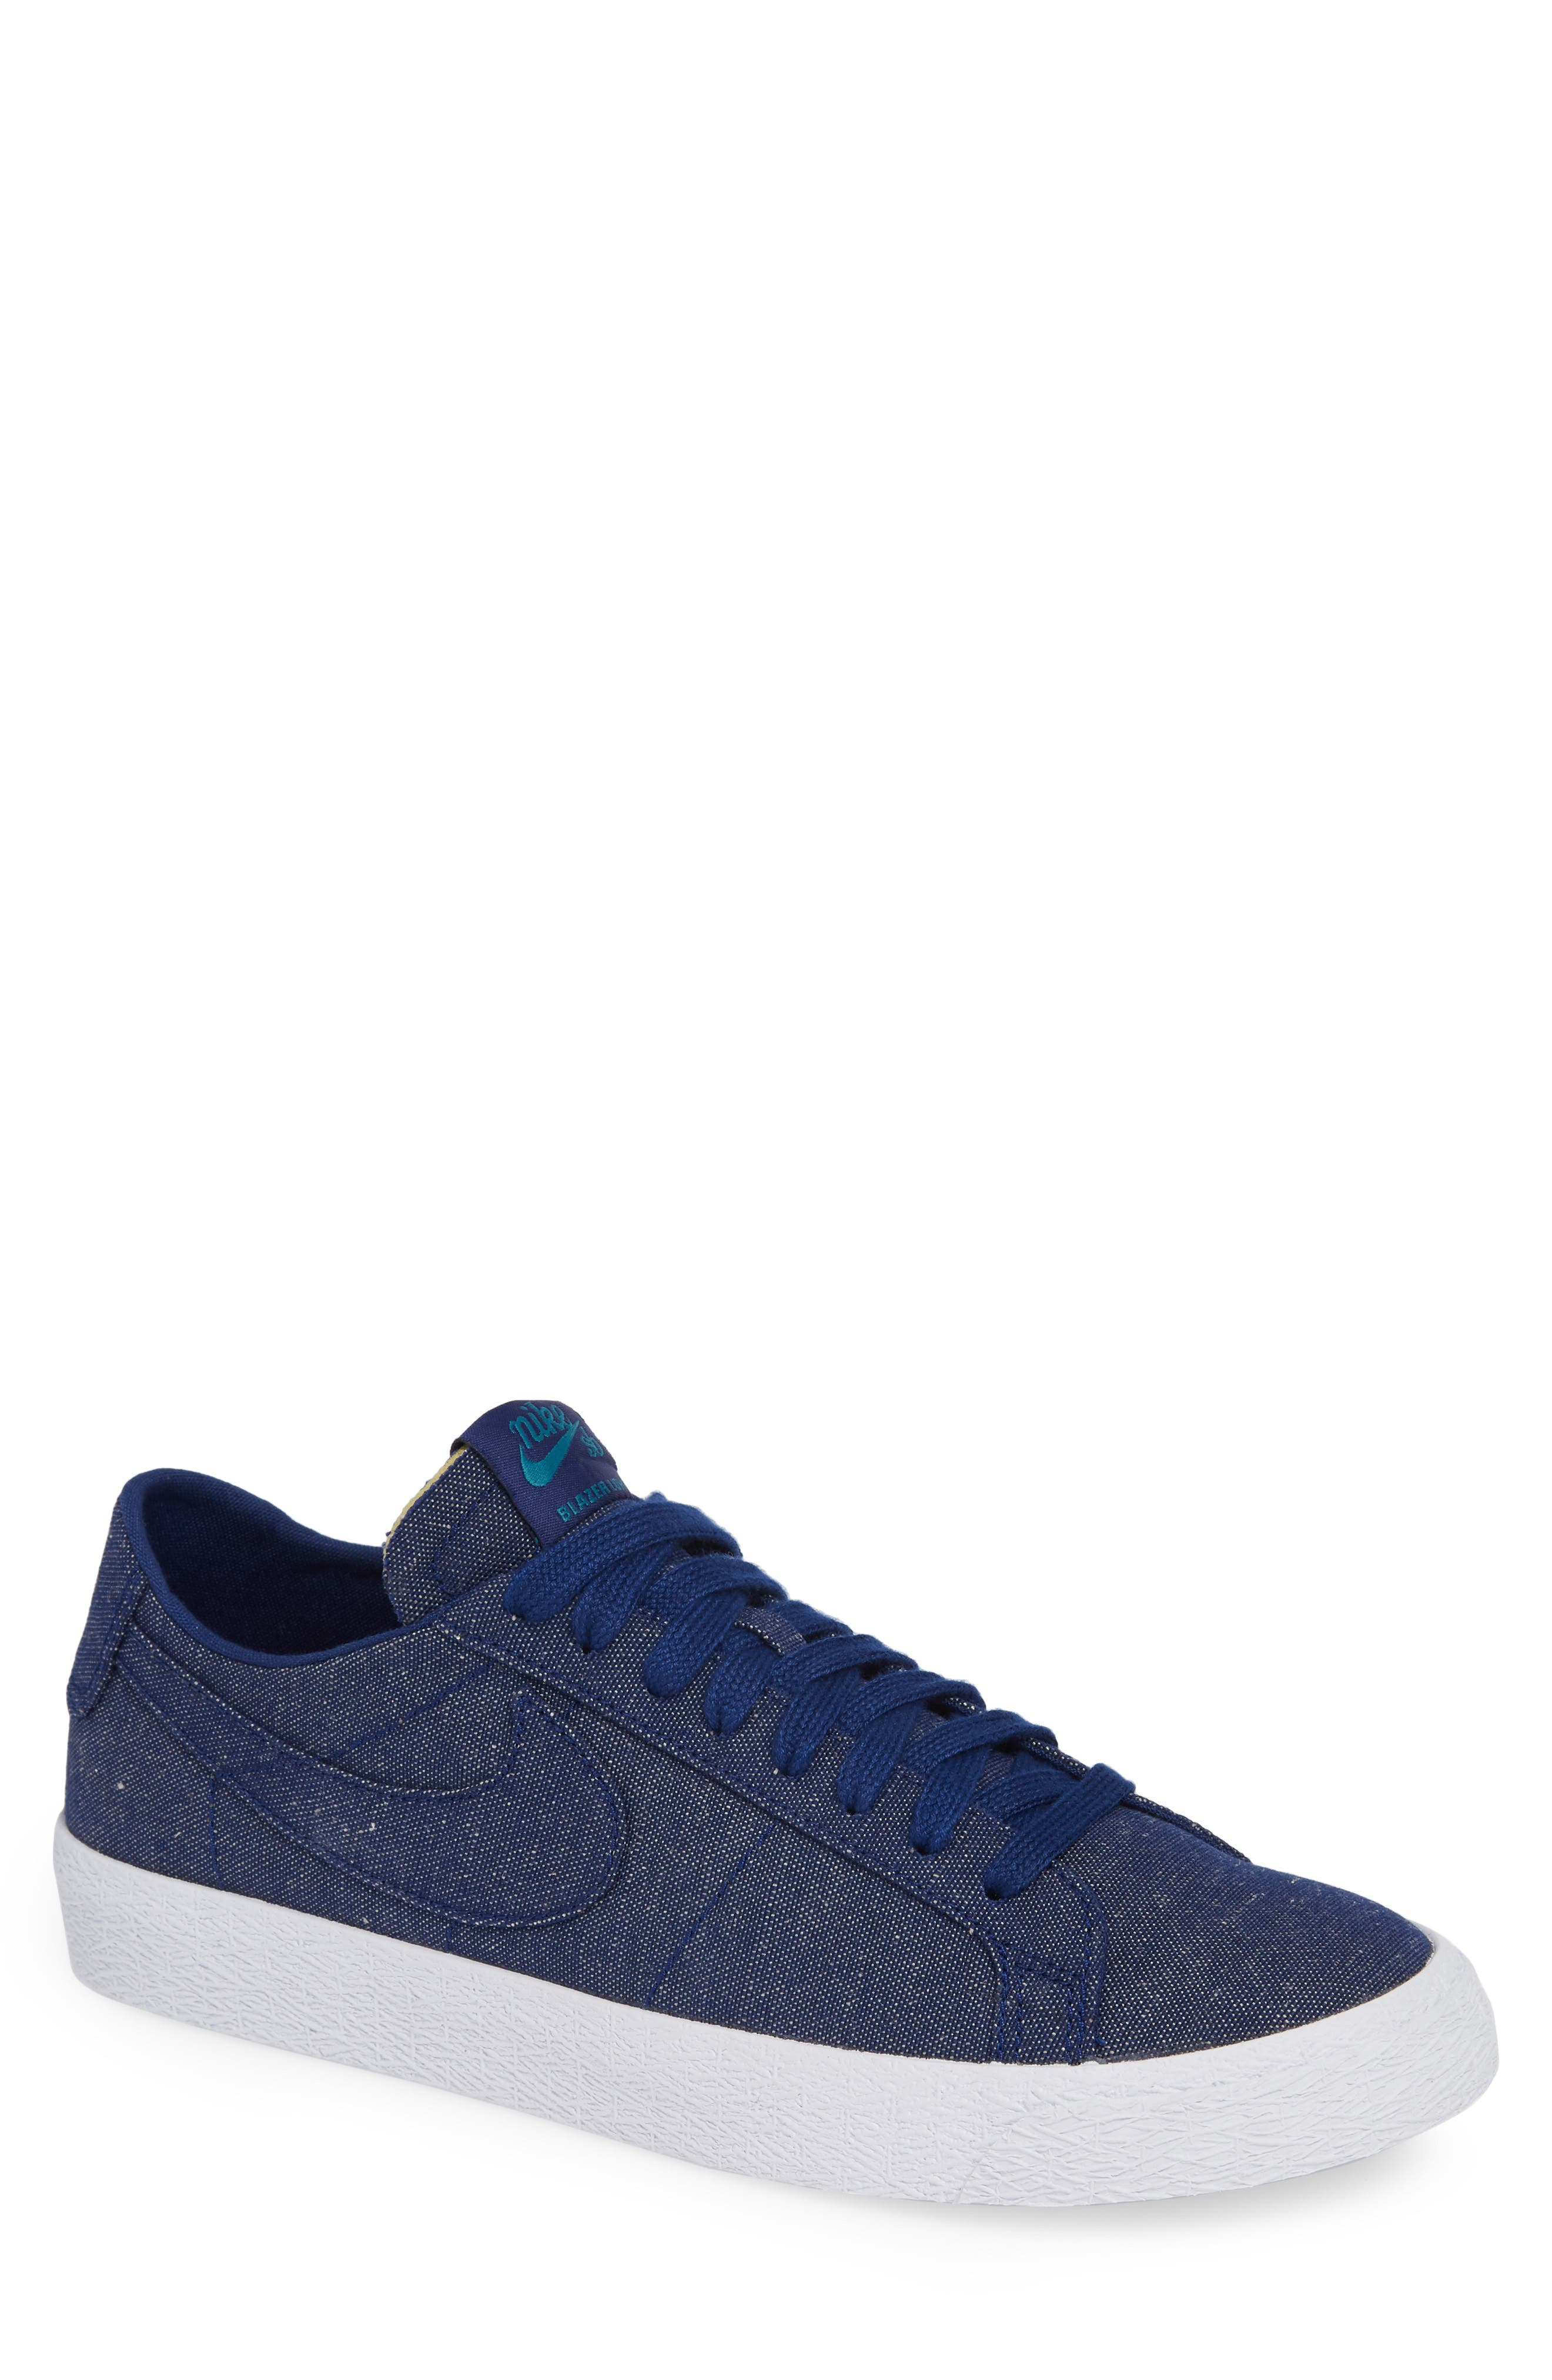 SB Zoom Blazer Canvas Decon Skateboarding Sneaker,                             Main thumbnail 1, color,                             BLUE VOID/ TEAL